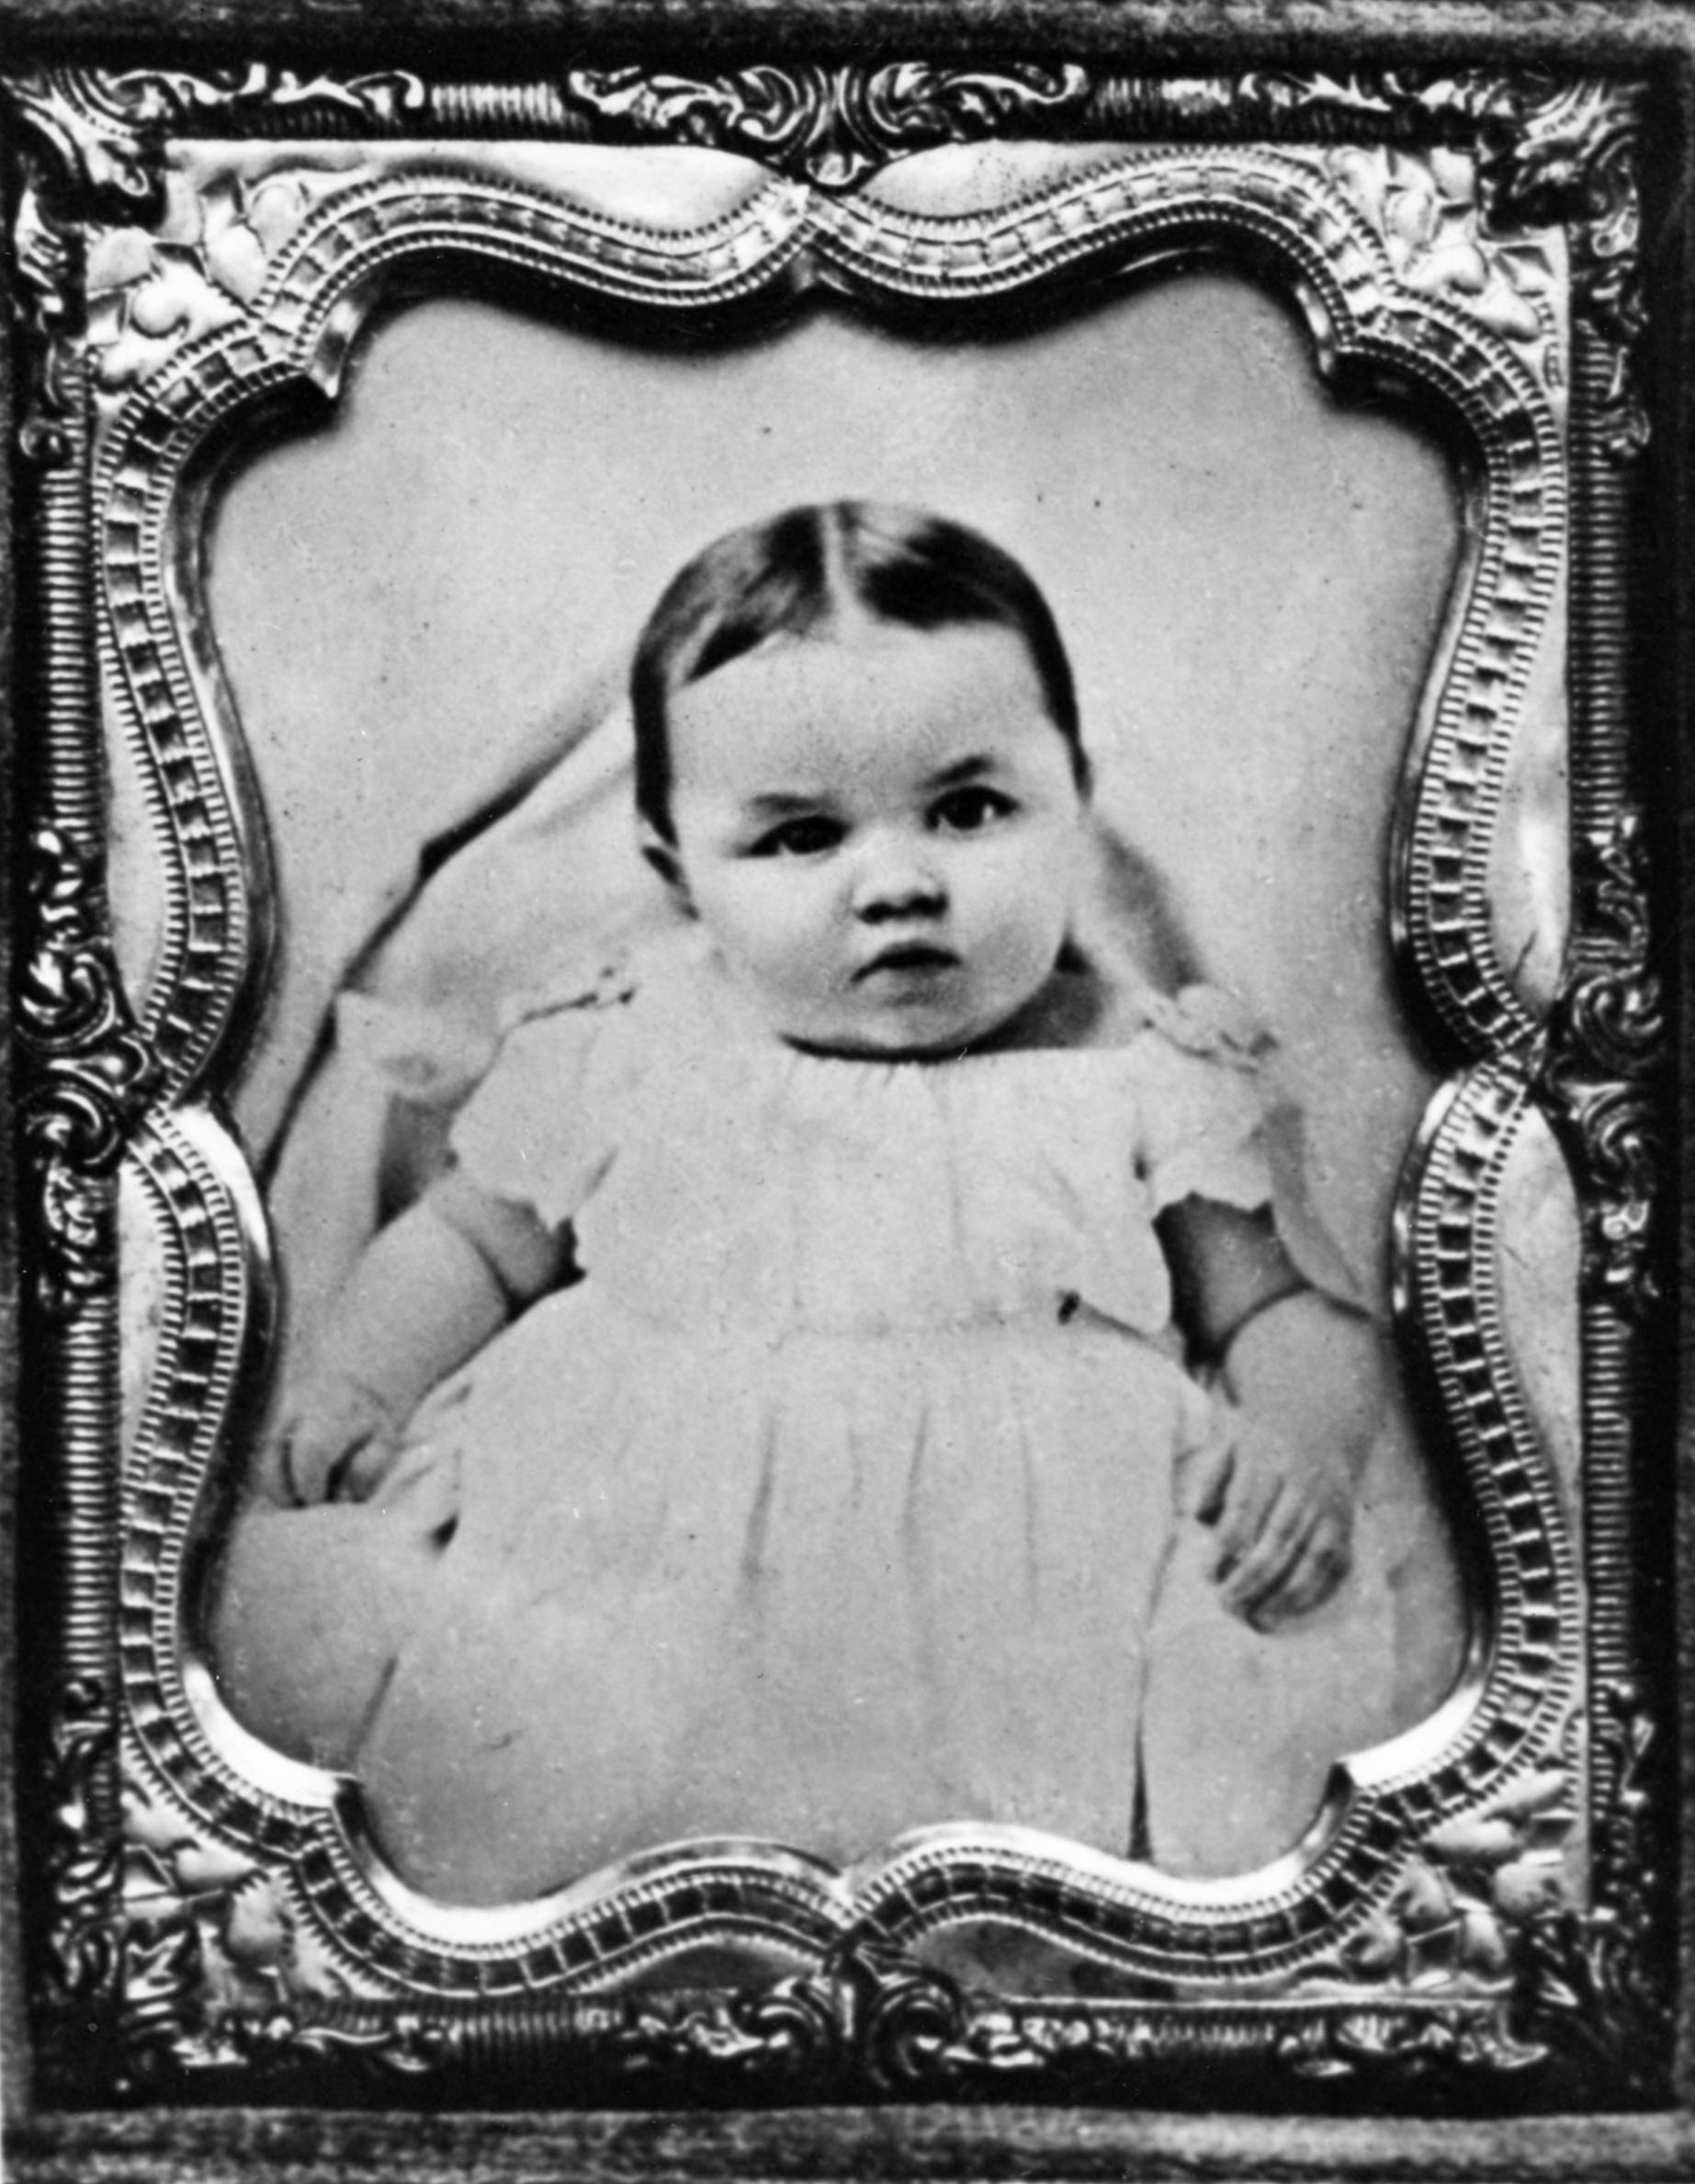 Katharine Lee Bates as an infant, courtesy of Melinda M. Ponder and the Wellesley College Archives